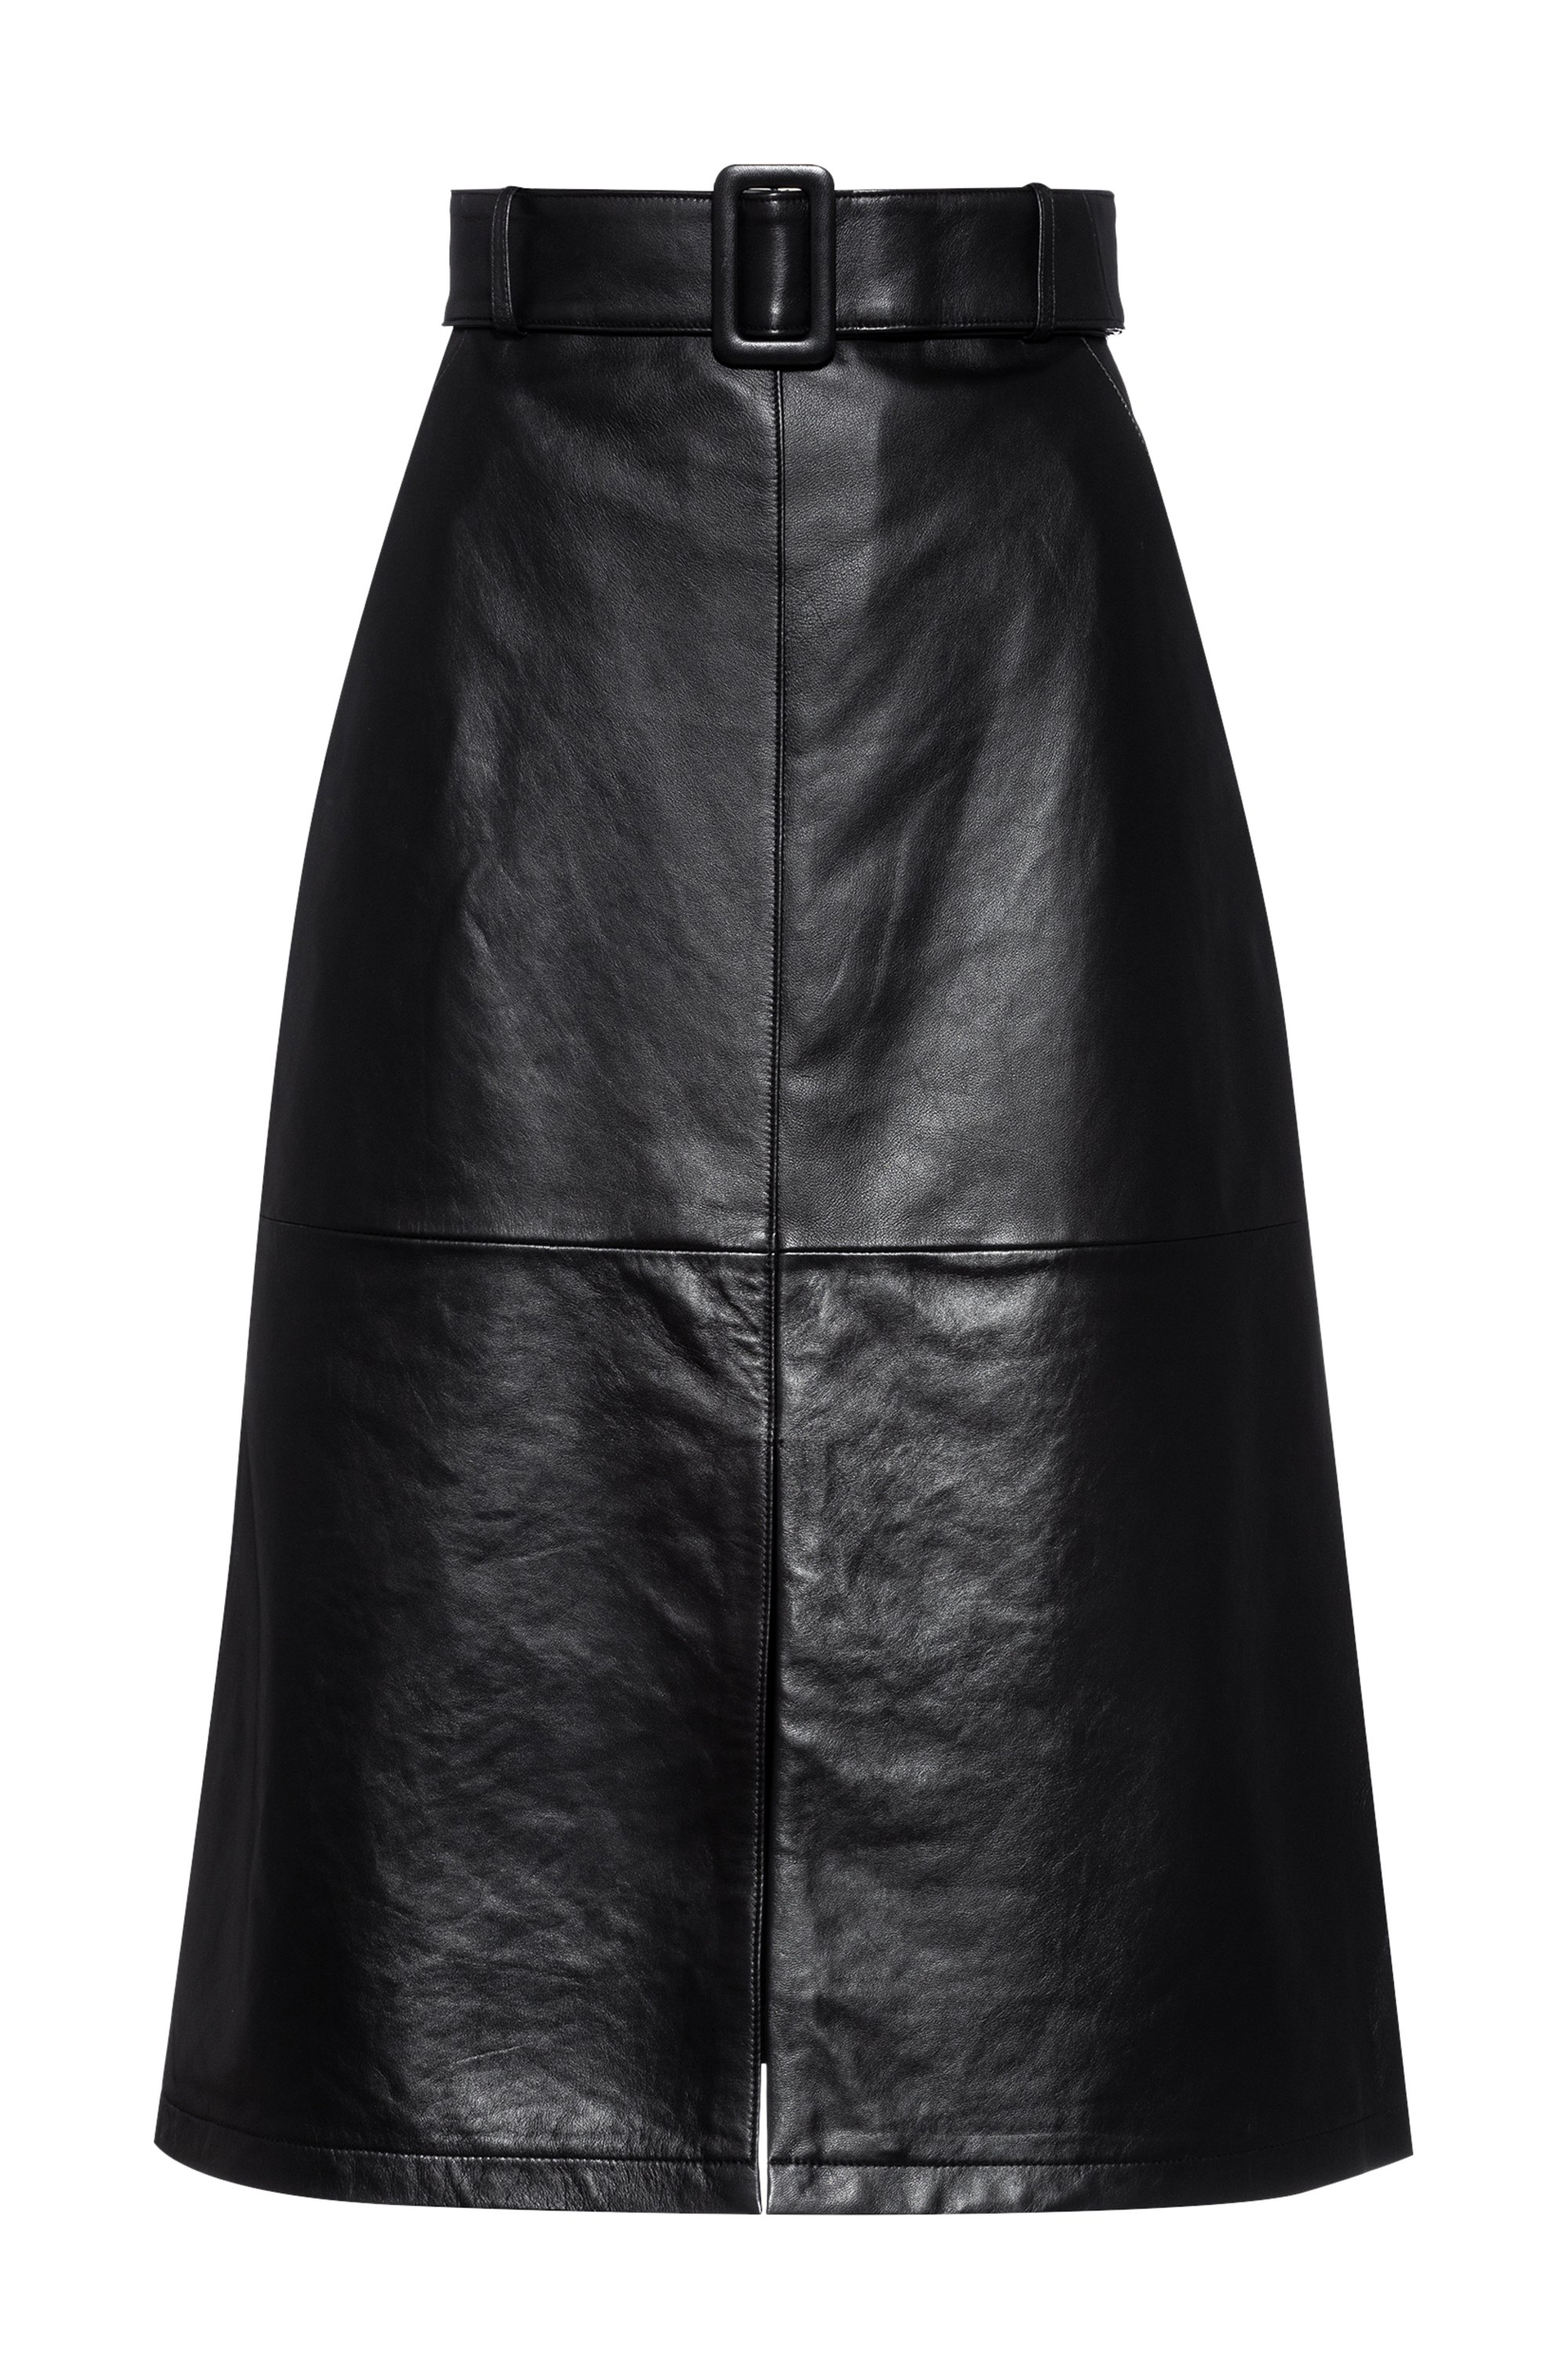 A-line midi skirt in leather with belted waist, Black